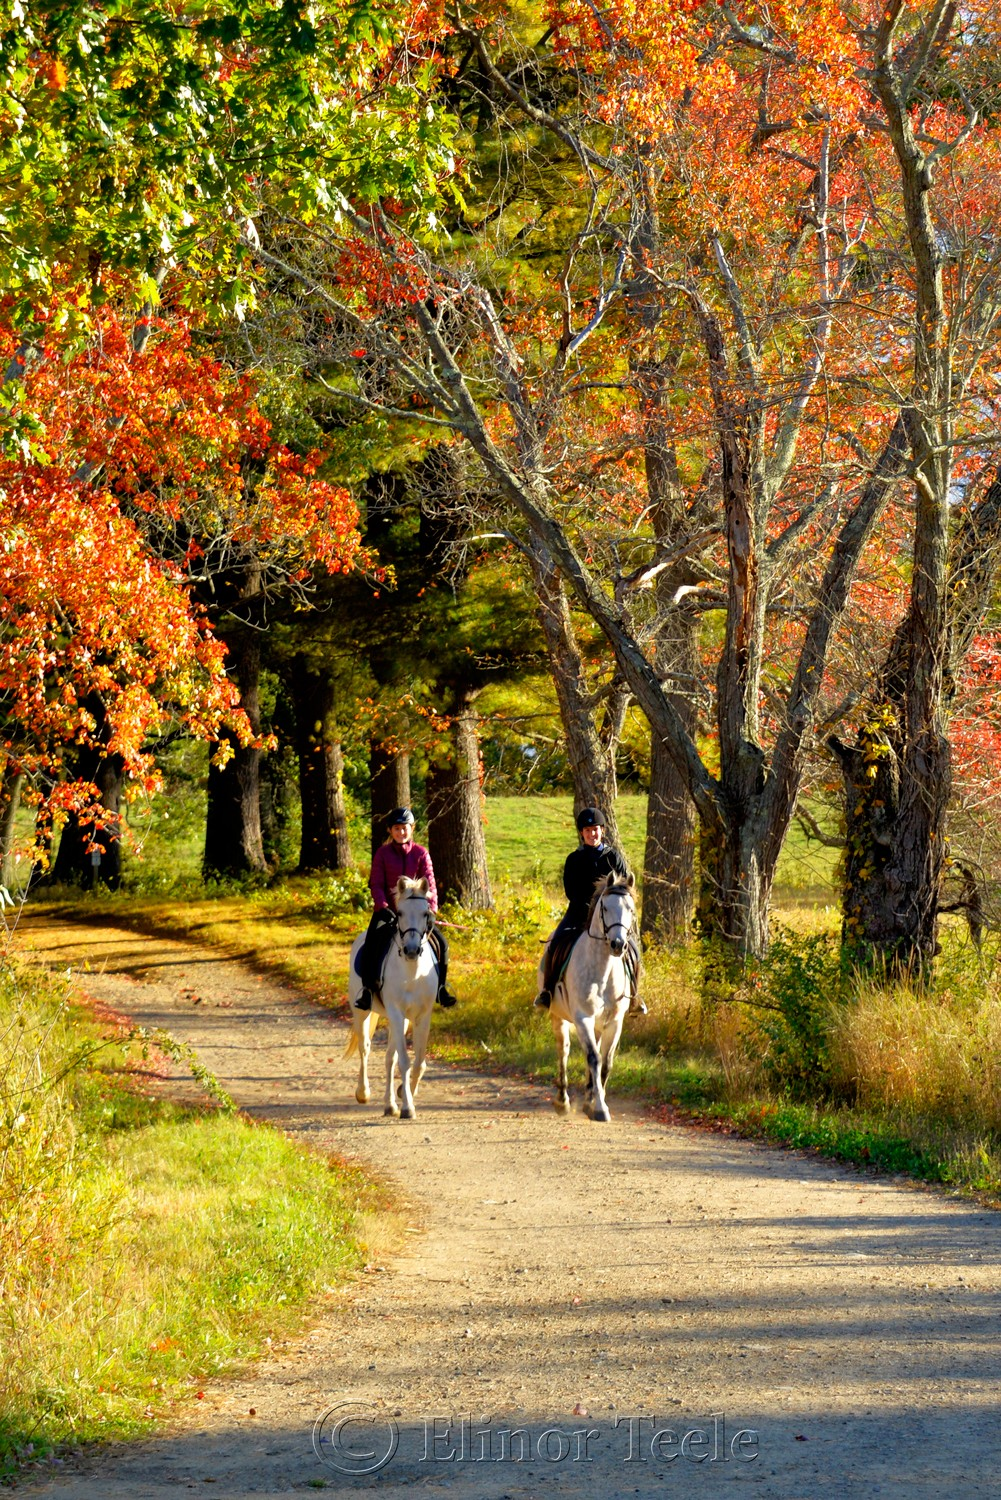 Fall Foliage – Horse Riding, Appleton Farms, Ipswich MA 2